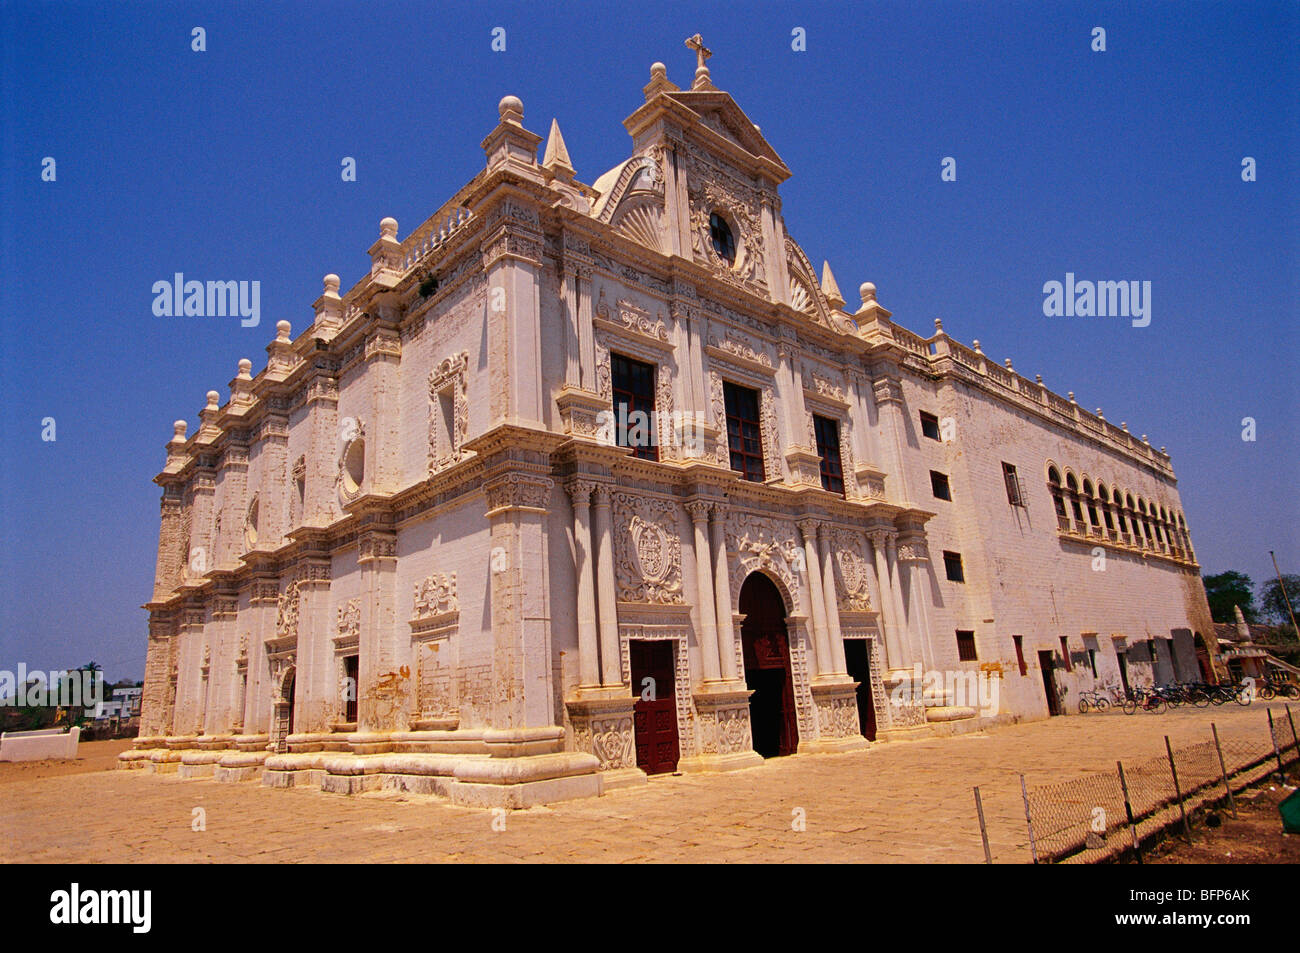 NPM 66267 : St Paul cathedral ; Diu UT ; India - Stock Image